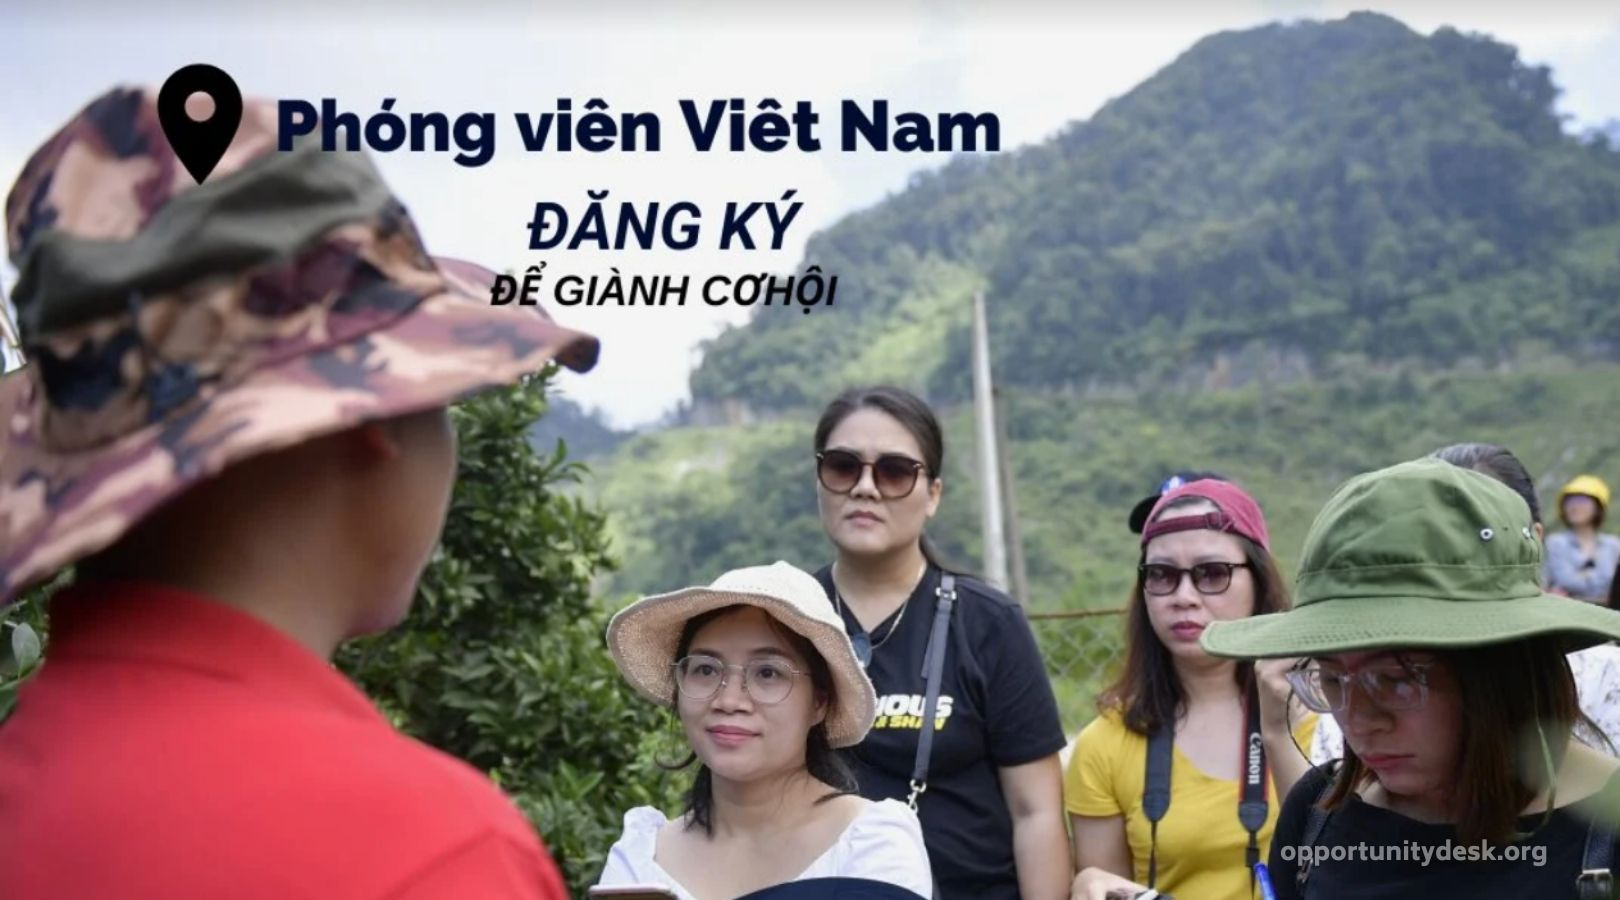 Climate & Energy Reporting Program 2020 for journalists in Vietnam (Fully-funded)